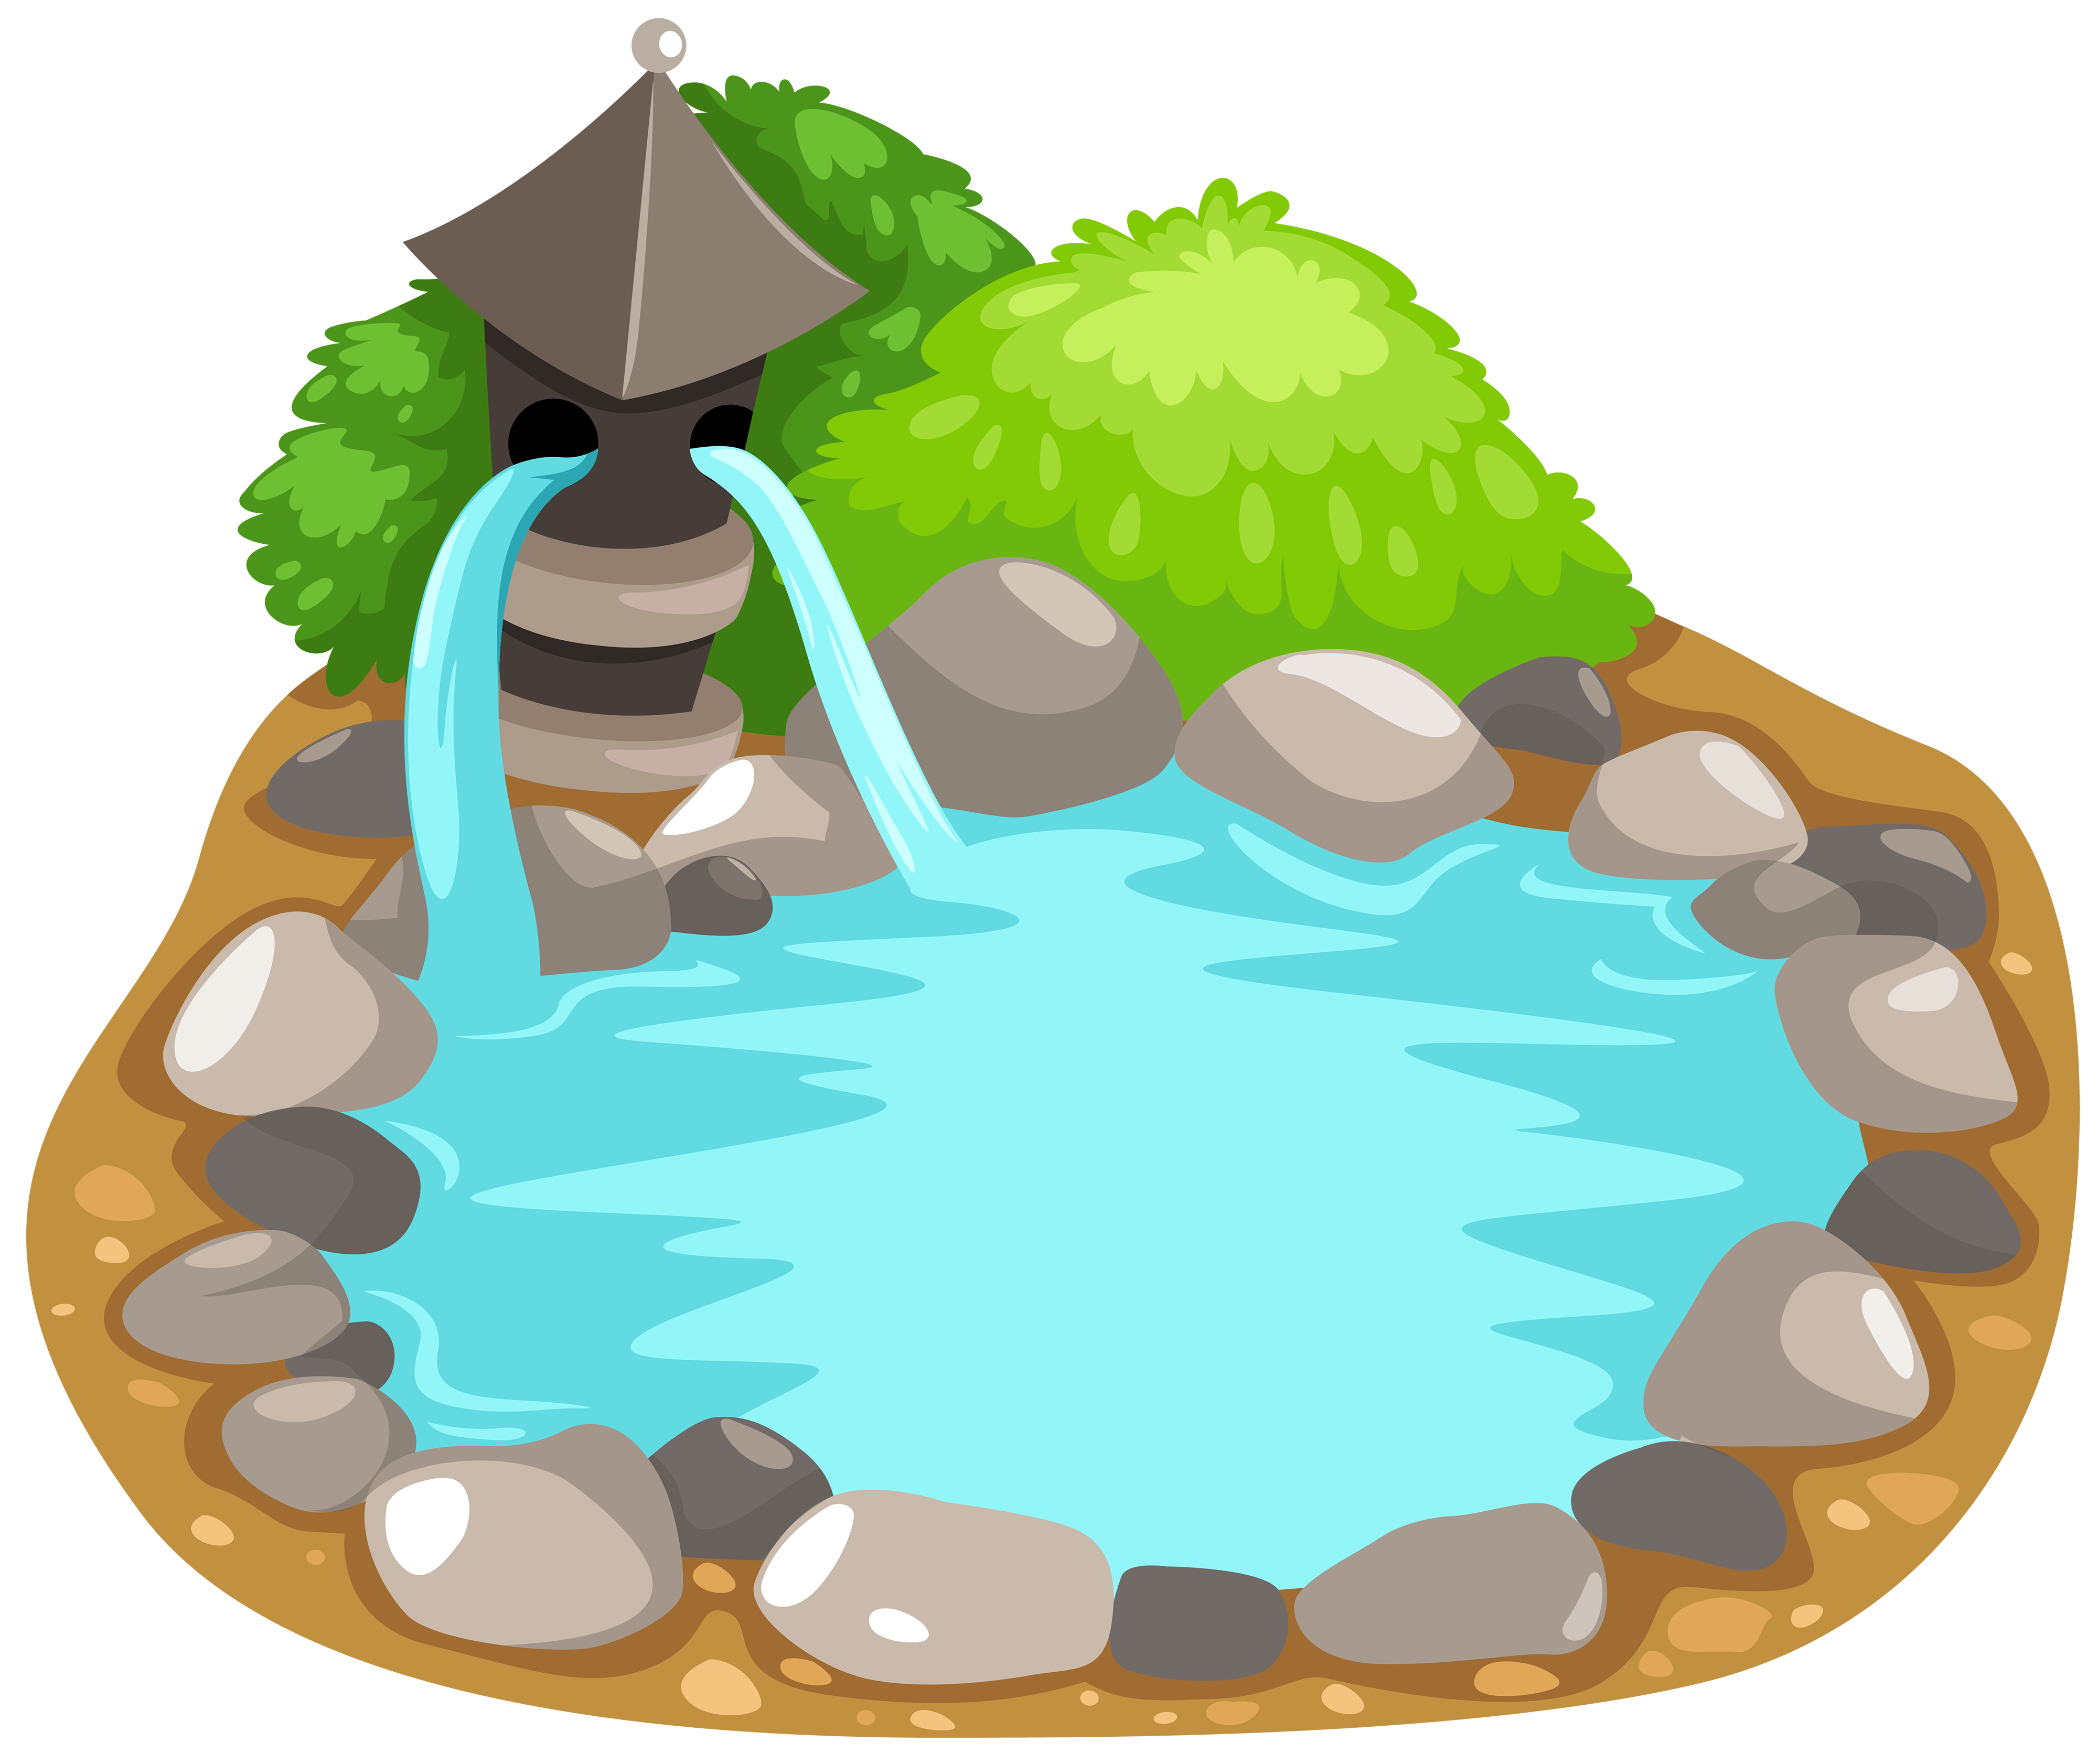 Fish in pond clipart no watermark graphic royalty free library Pond PNG Clipart - Best WEB Clipart graphic royalty free library